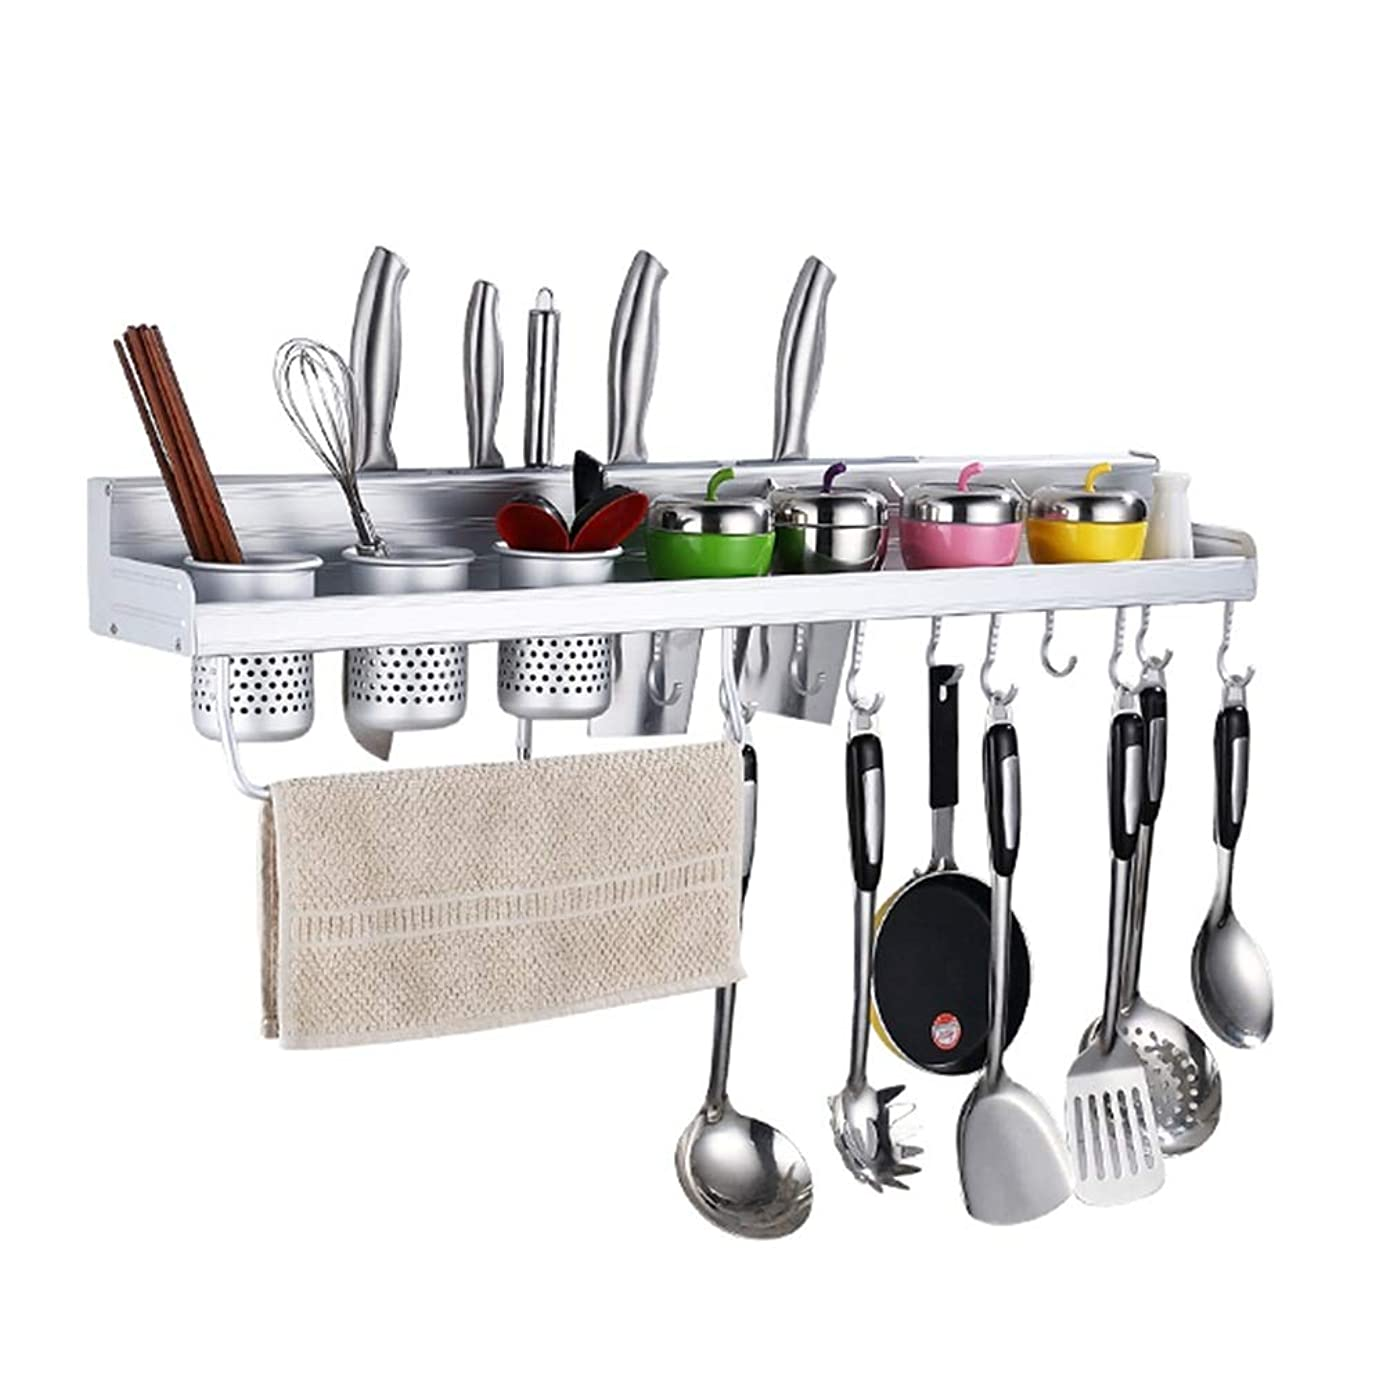 Kitchenware Space management One-piece Tray Wall-mounted Integrated Space management Knife Holder One-piece Supplies Space management Tray Spice Tray Kitchen Widening Easy to install Space management